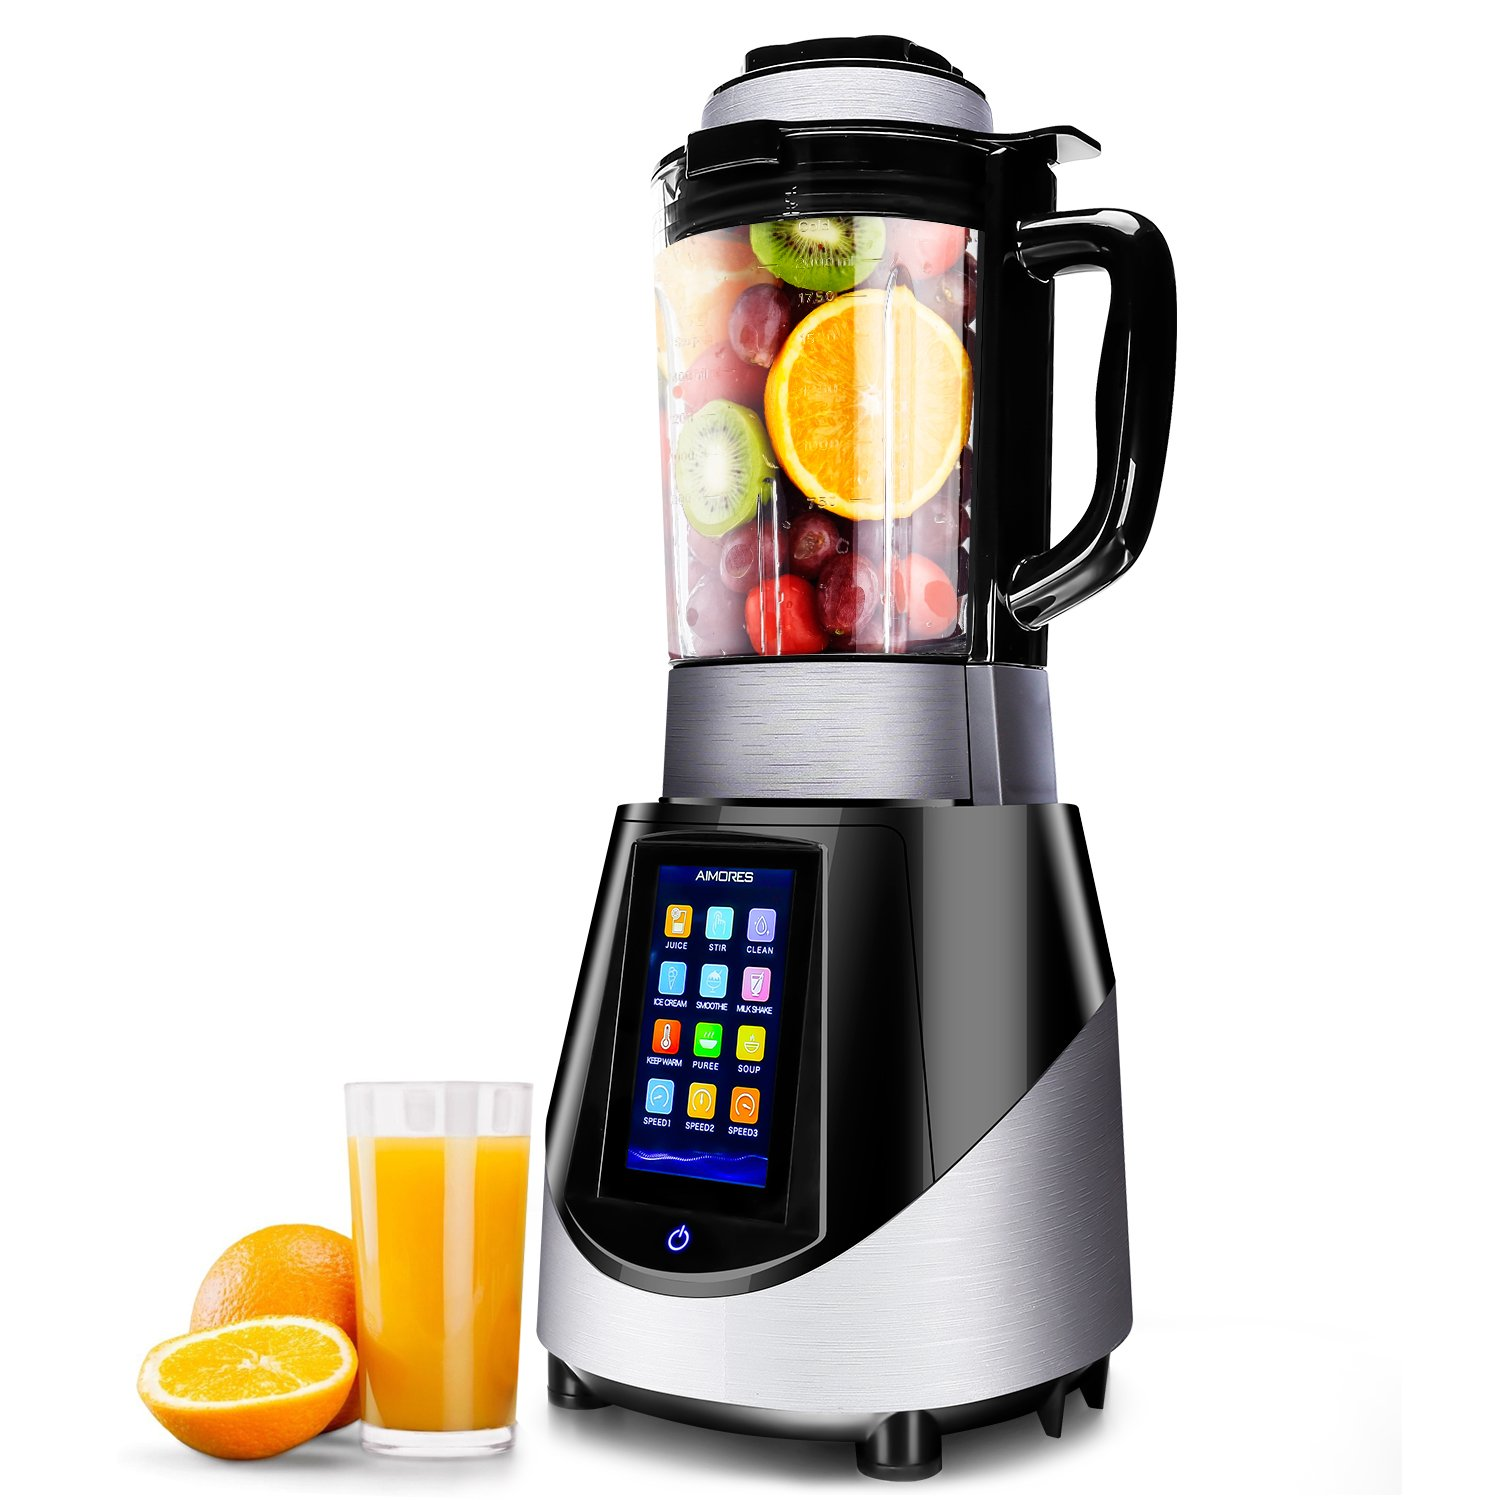 Commercial Blender Aimores - Smoothie Soup Maker - Heating, Programmed Settings - LED Touch Screen Panel - 56oz. Glass Pitcher - ETL/FDA Certified